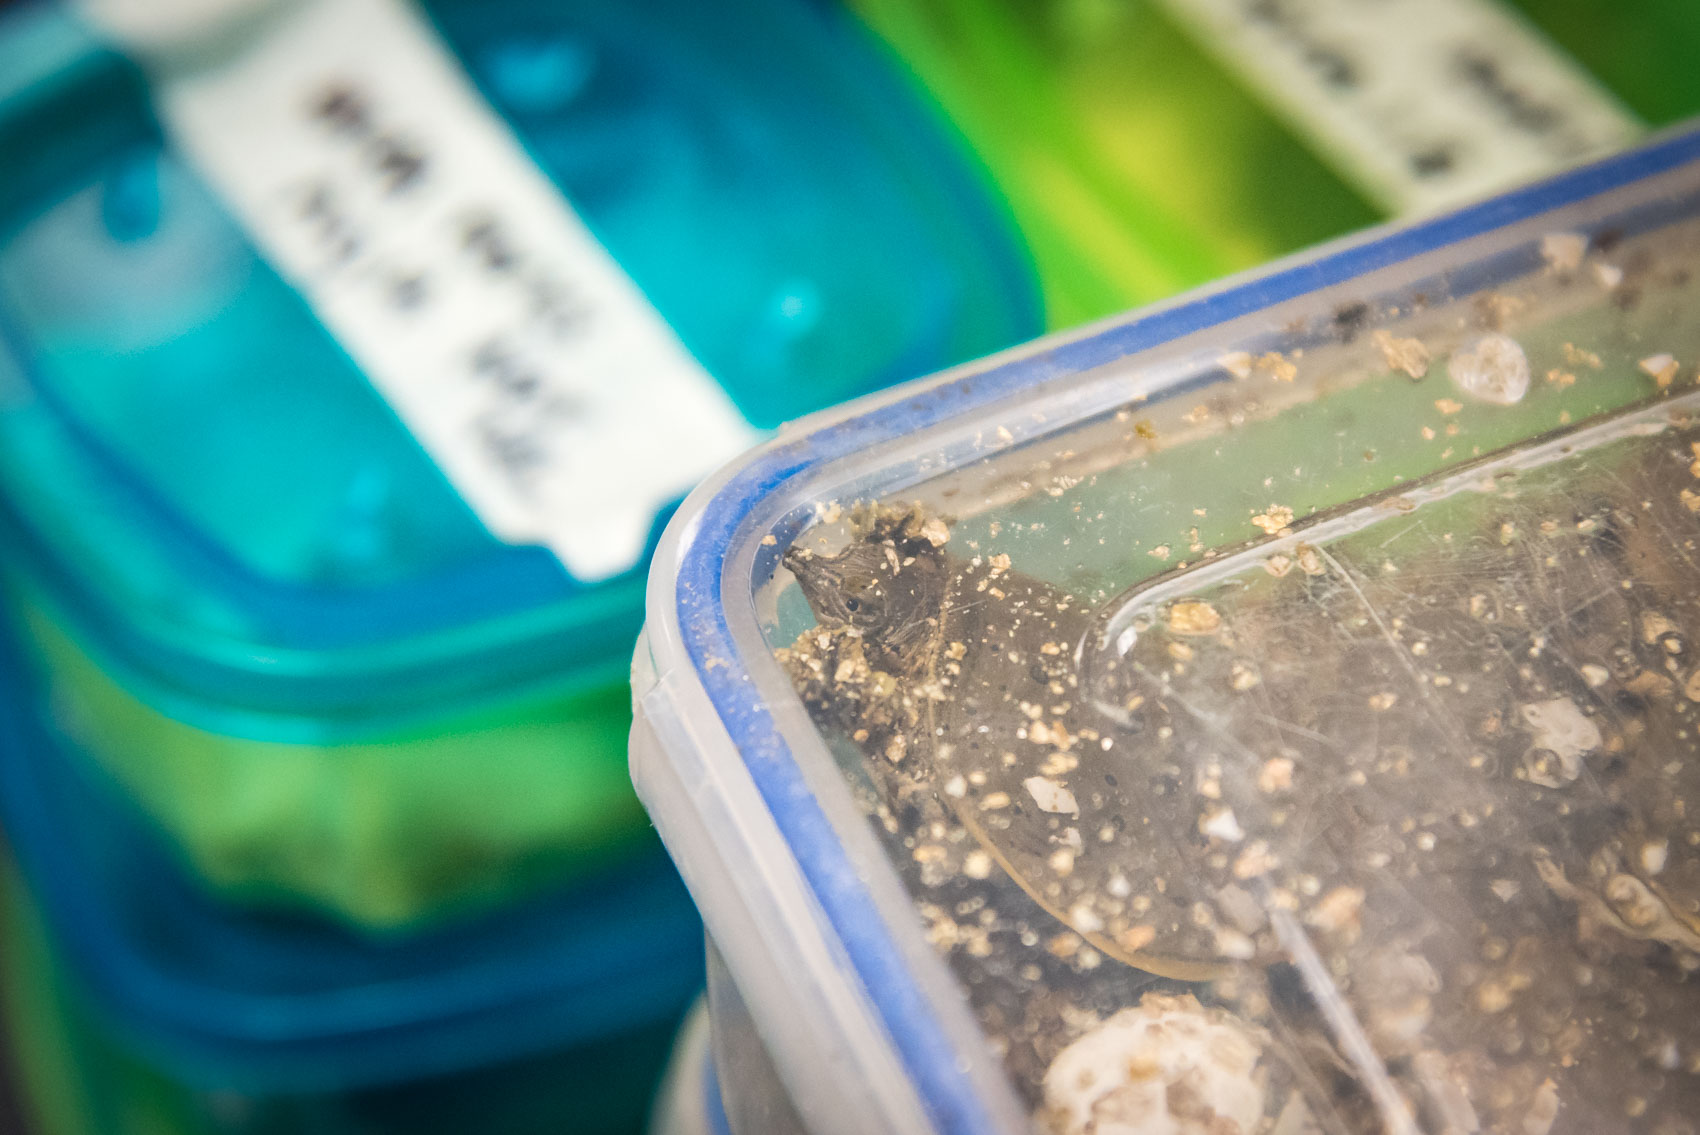 A hatched spiny softshell turtle baby in a plastic container in a lab at the UTRCA